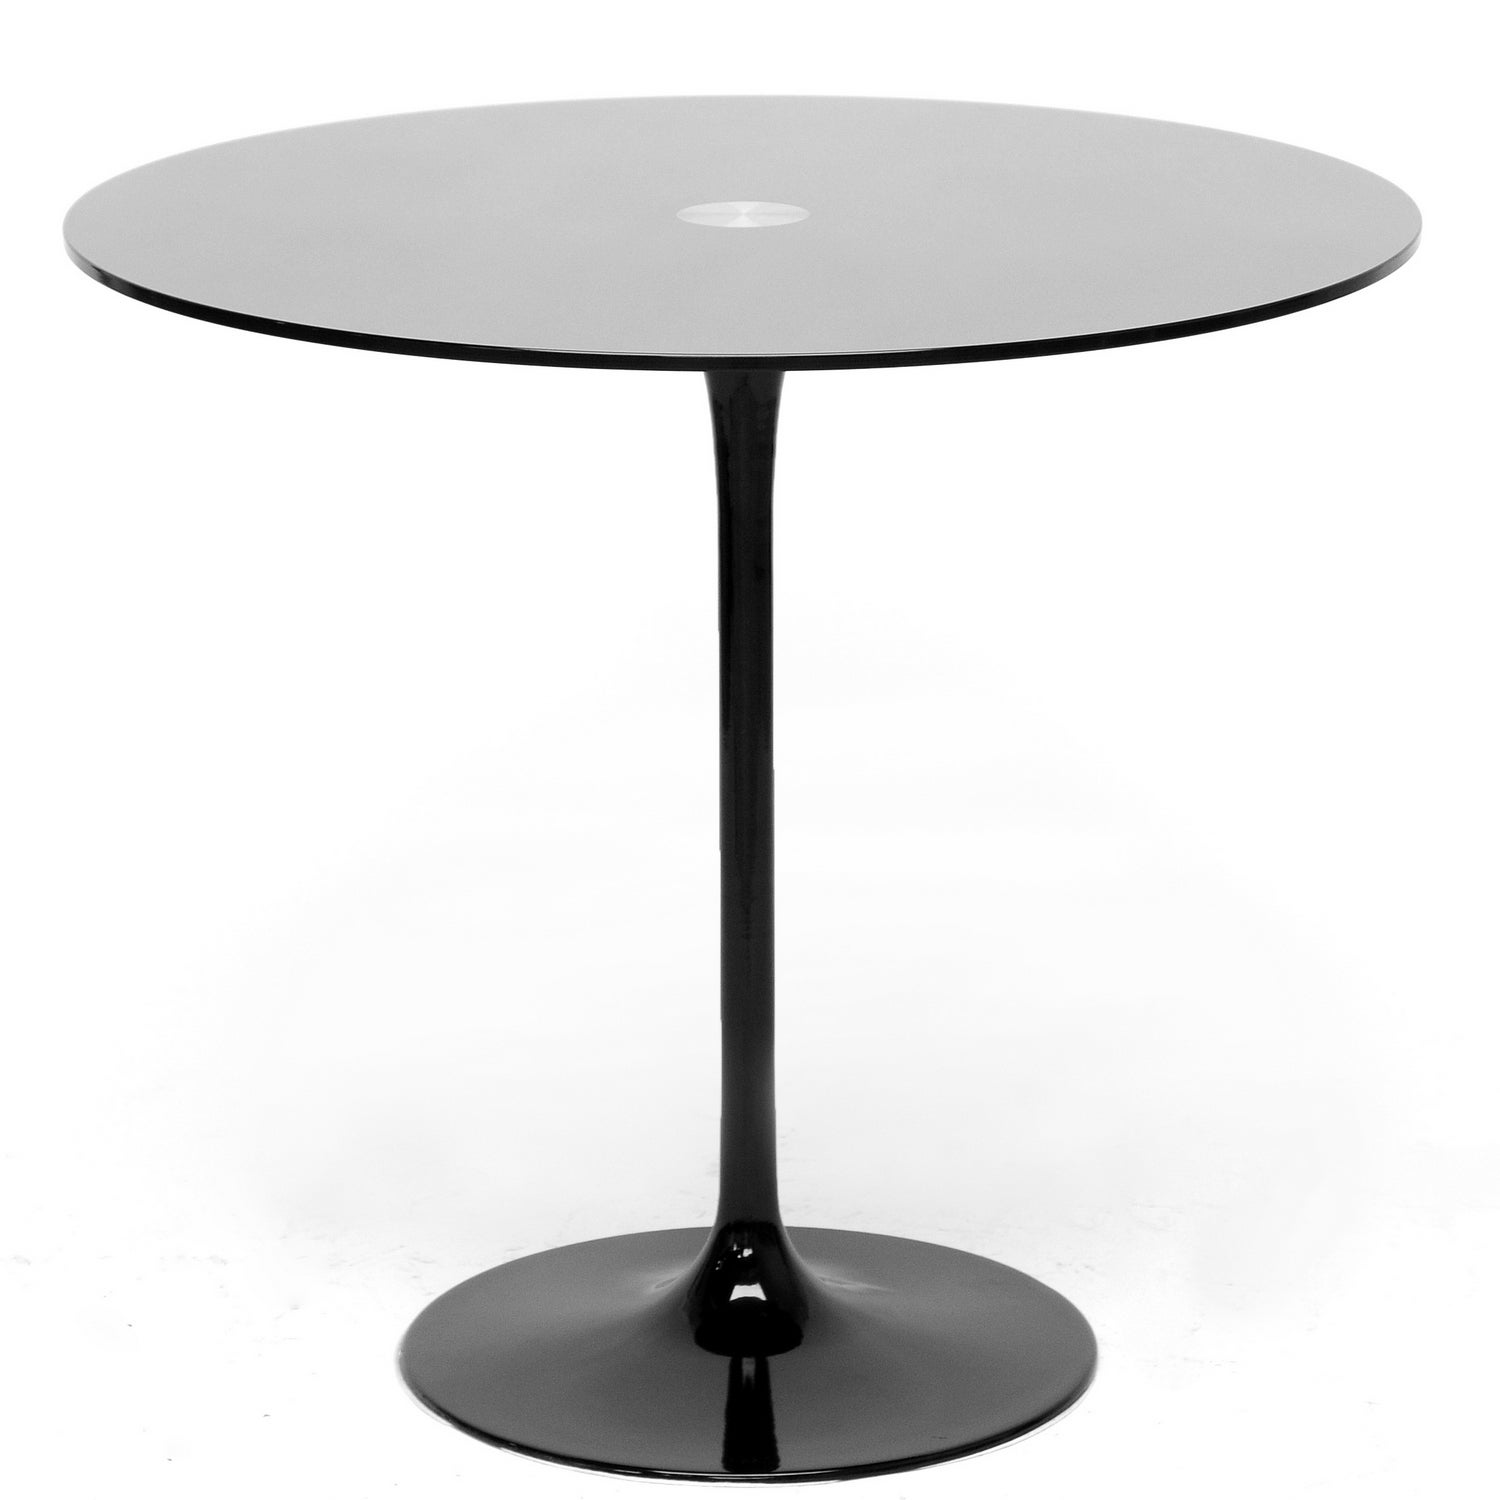 Black Bistro Table Vienna Black Bistro Table In Vienna  : Odensa Black Glass Modern Bistro Table L14049154 from amlibgroup.com size 1500 x 1500 jpeg 109kB